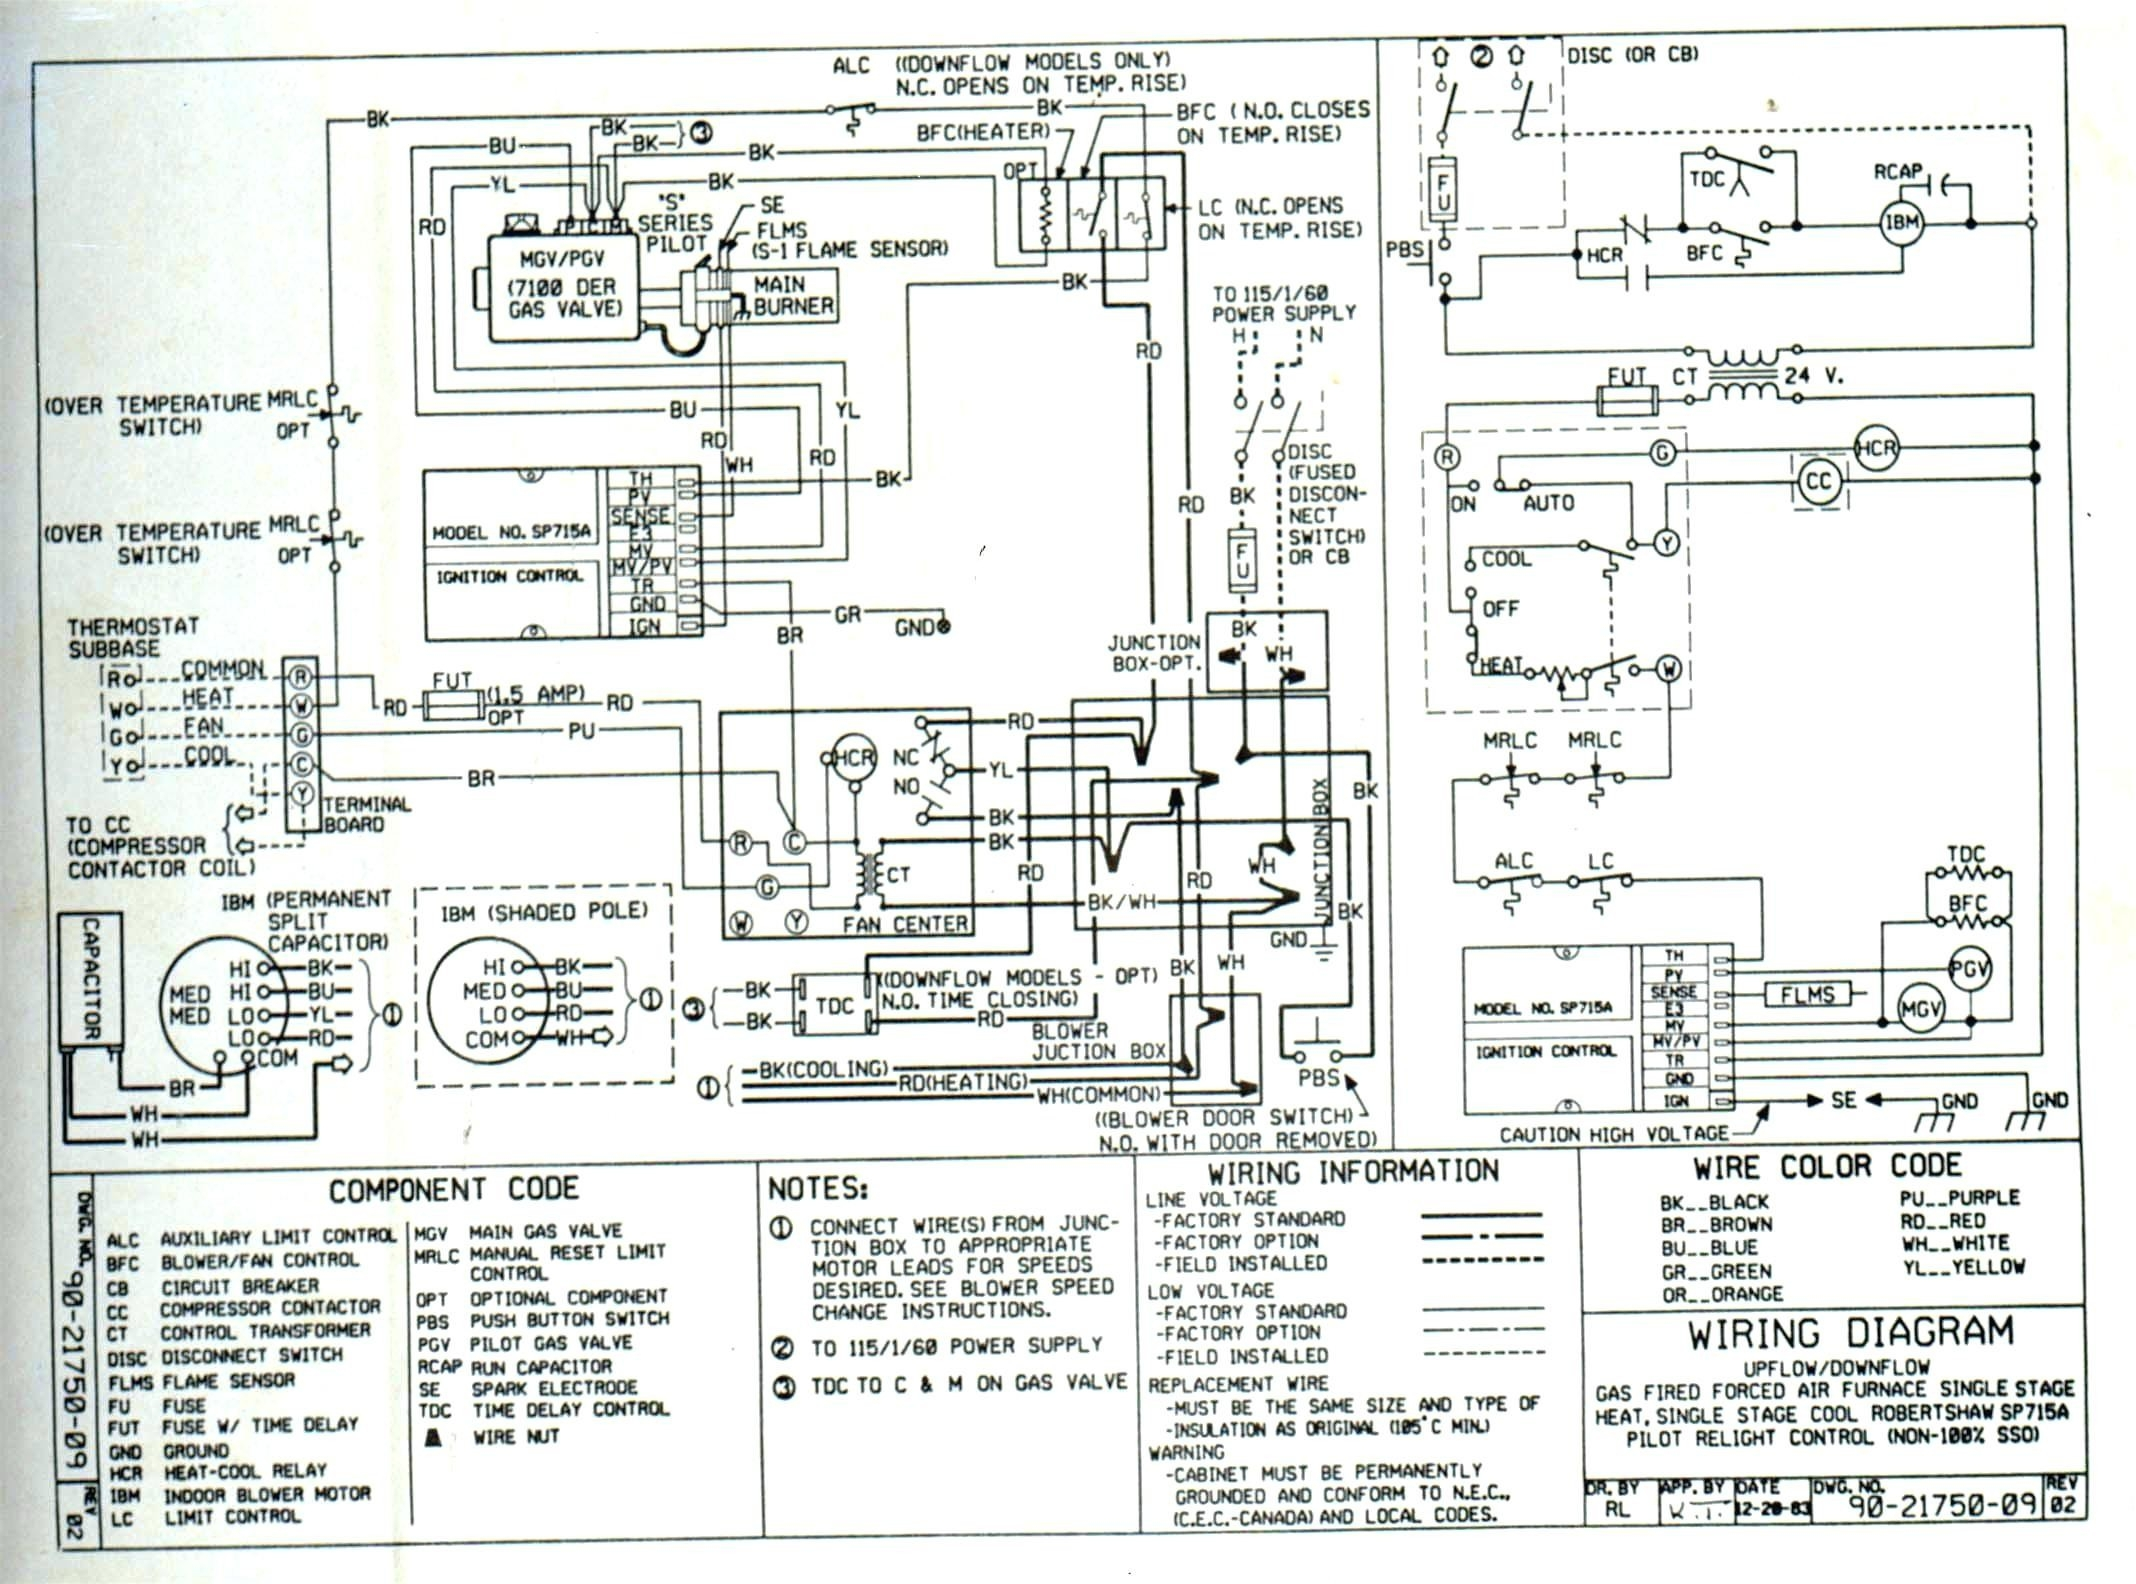 [SCHEMATICS_4FD]  Trane Condenser Wiring Diagram | Wiring Diagram | Wiring Diagram For Ducane Air Conditioner |  | Wiring Diagram - AutoScout24